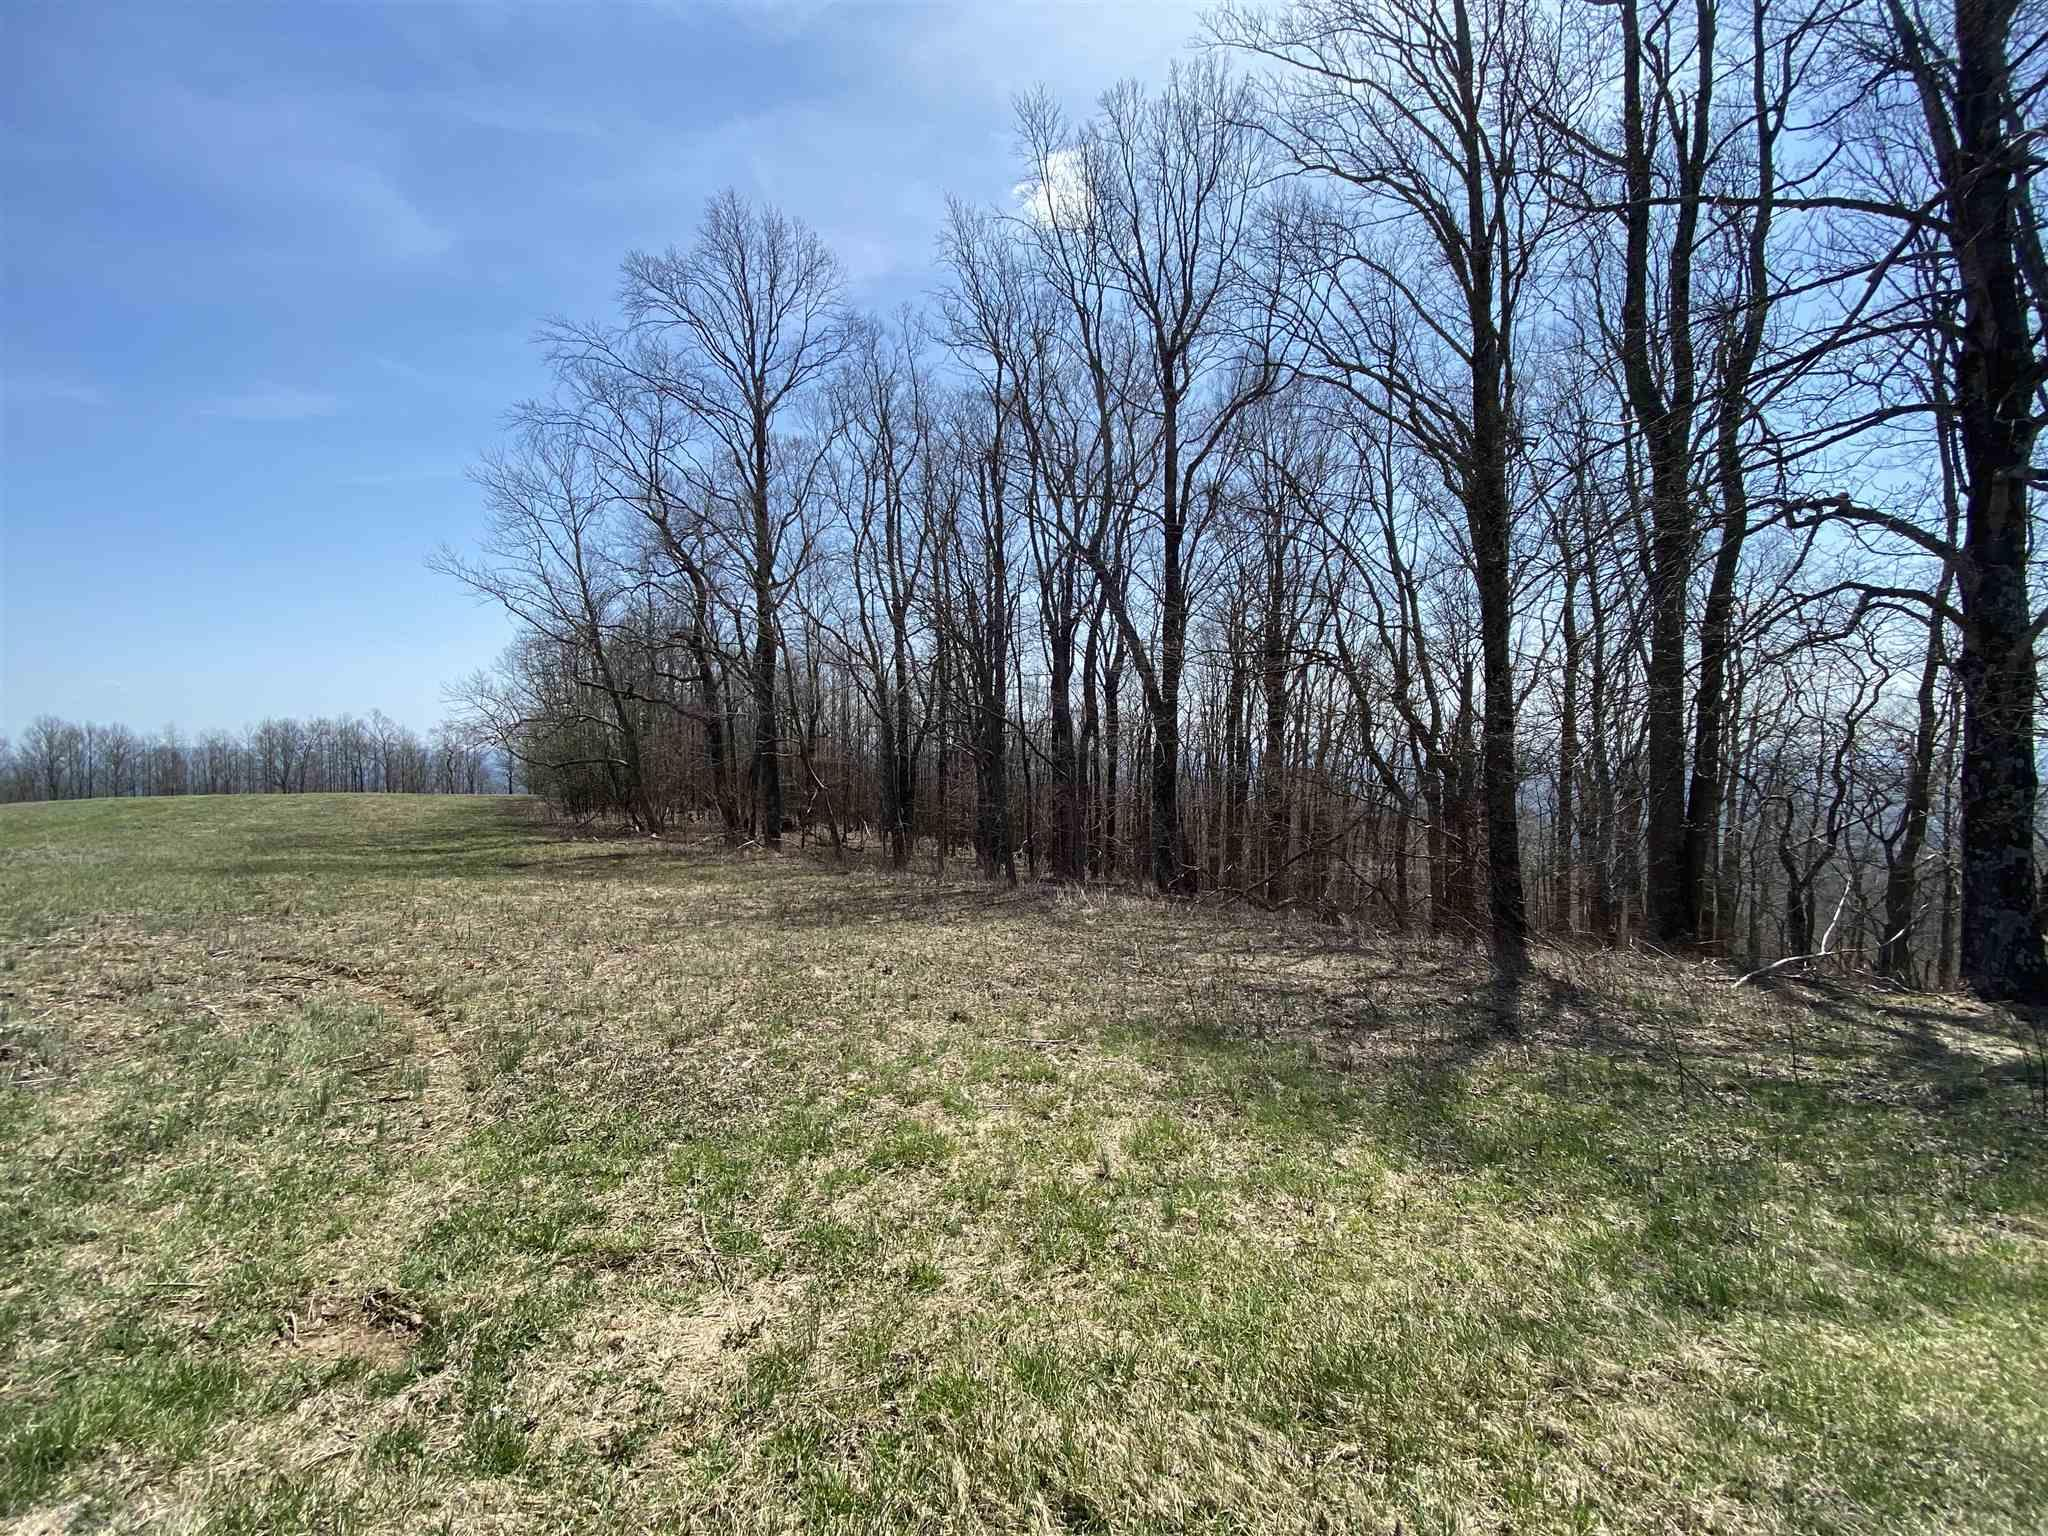 Here you have a lot that, if cleared, would have great Pidemont Views, Located in Elk Horn Acres, a quite development right off the Blue Ridge Parkway. At this price this lot will not last long, so jump on it today. Priced well below tax value.